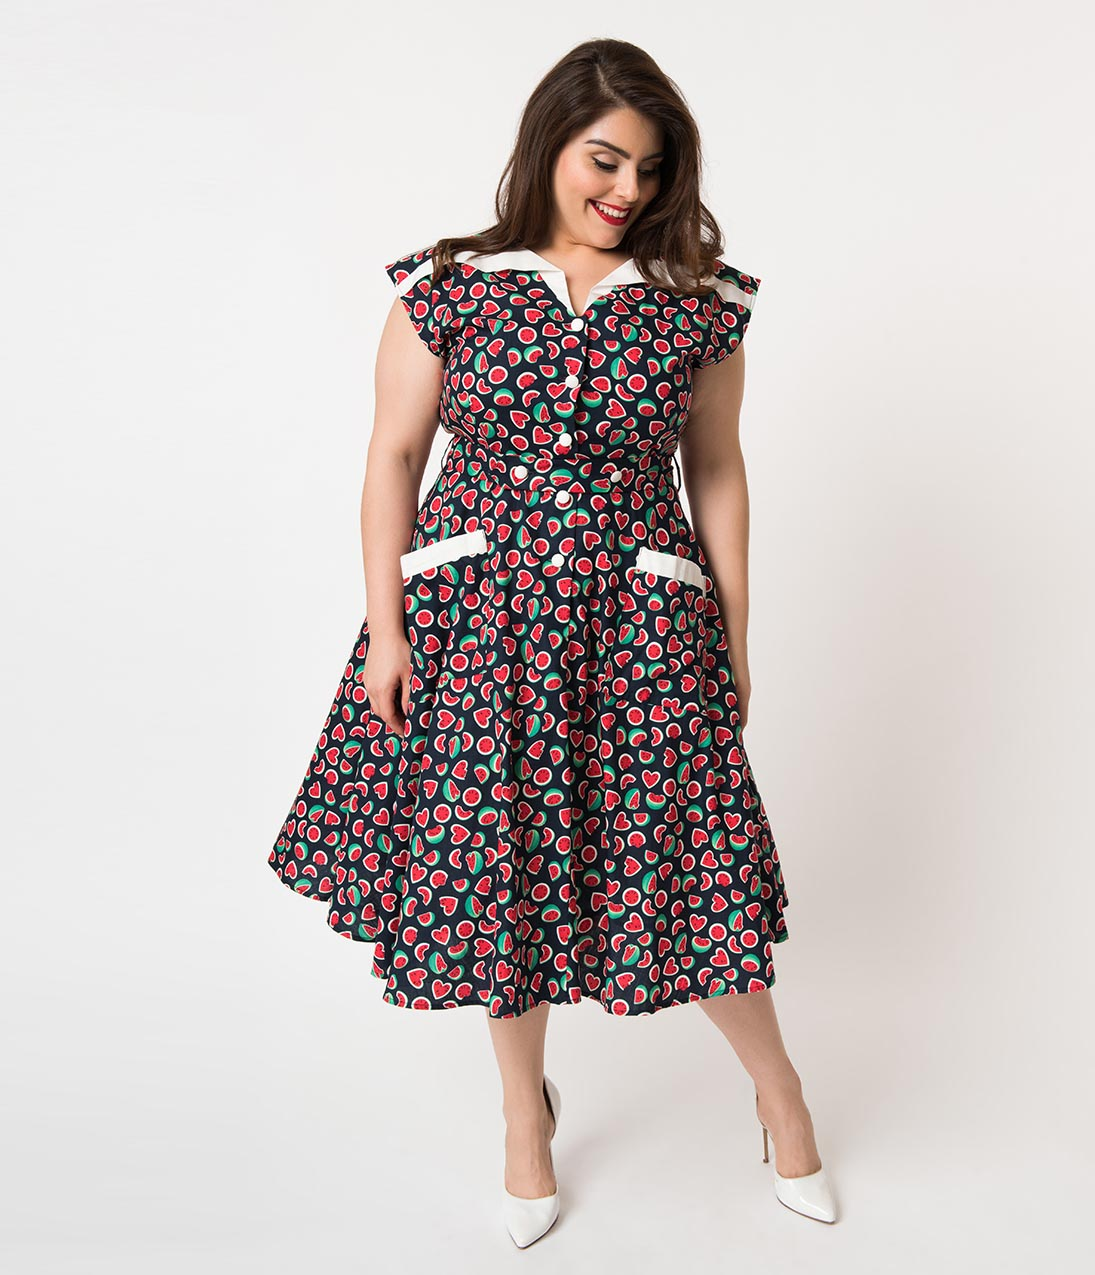 1950s Fashion History: Women's Clothing Unique Vintage Plus Size 1950S Style Navy Watermelon Print Cap Sleeve Hedda Swing Dress $88.00 AT vintagedancer.com